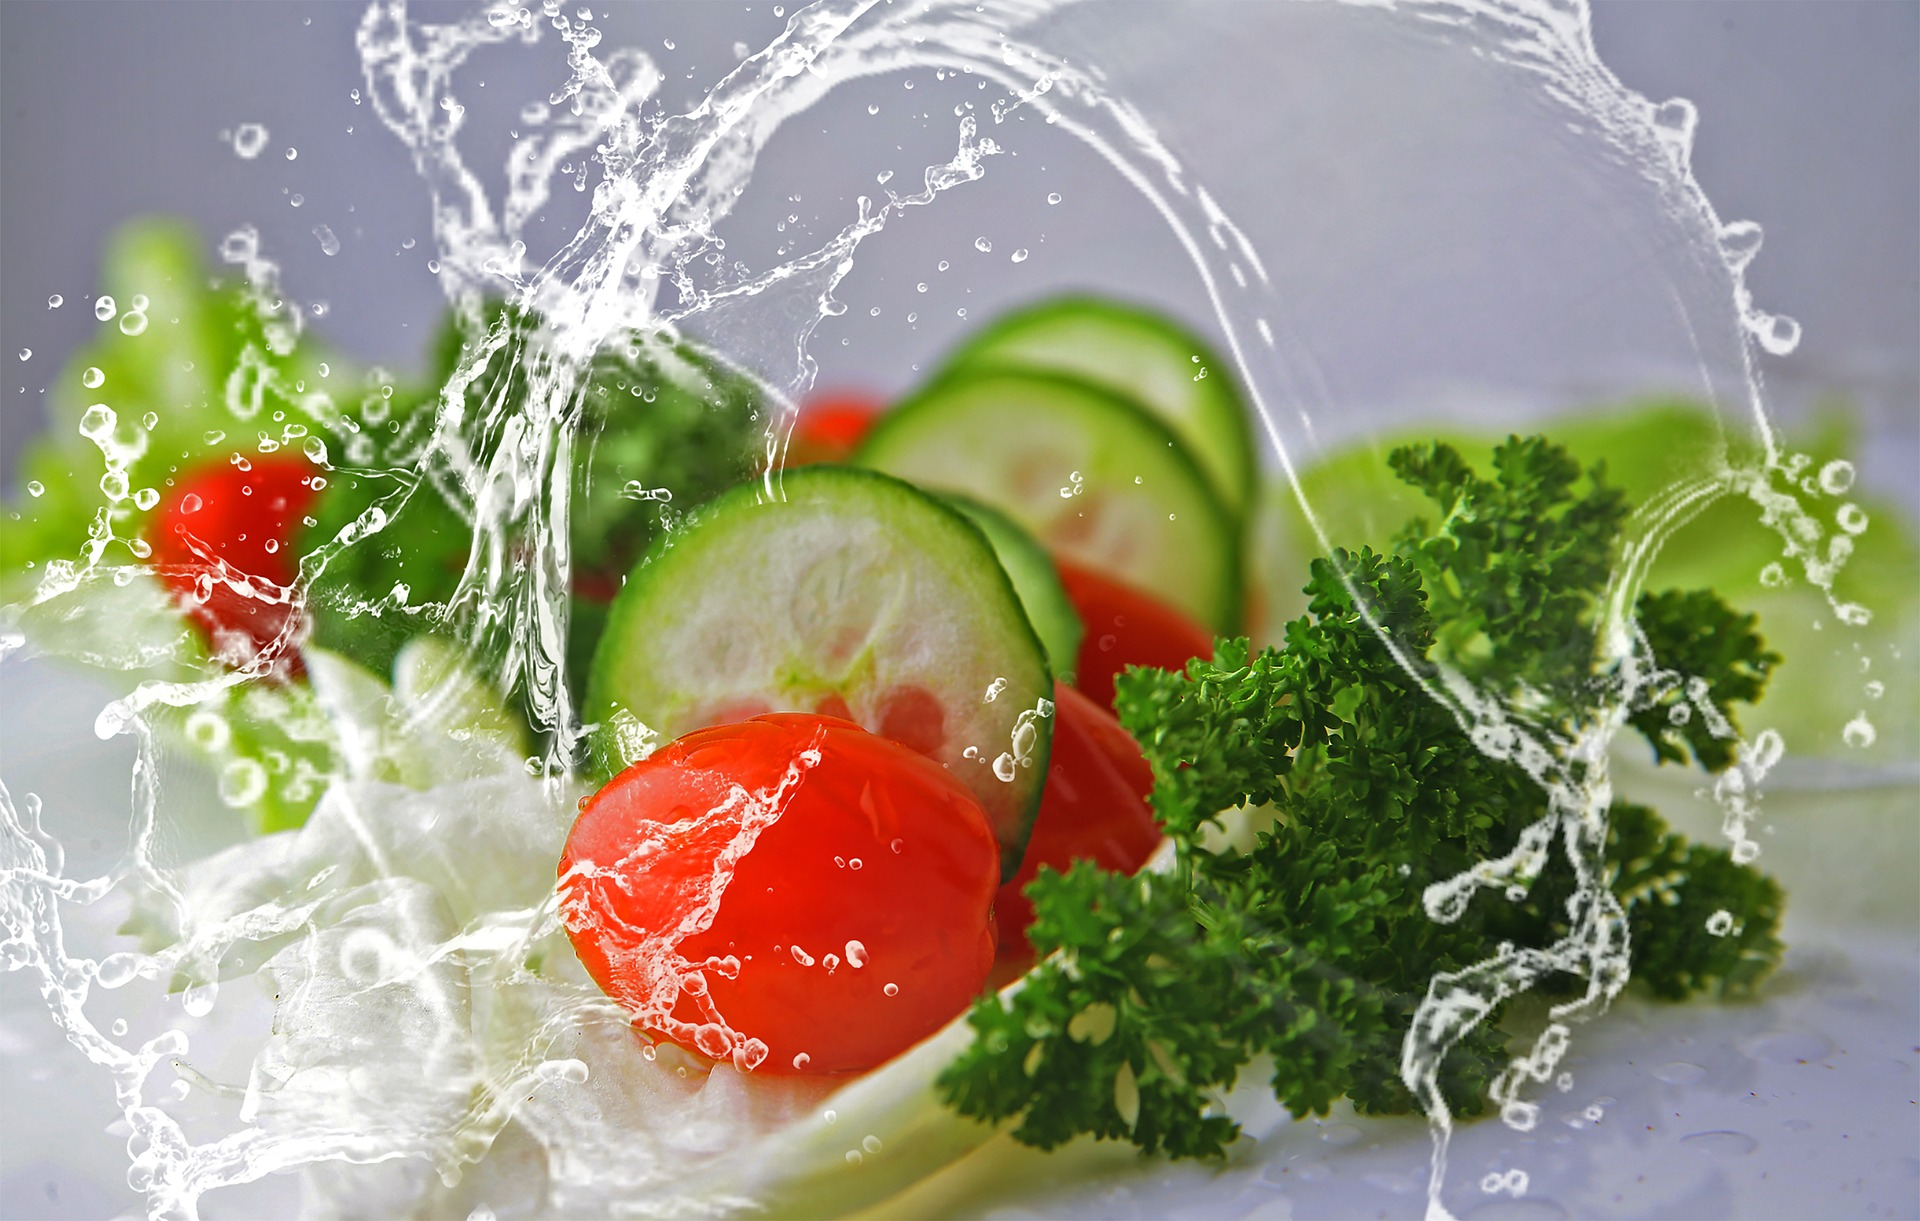 Image of health foods including cucumber, tomato, lettuce and water